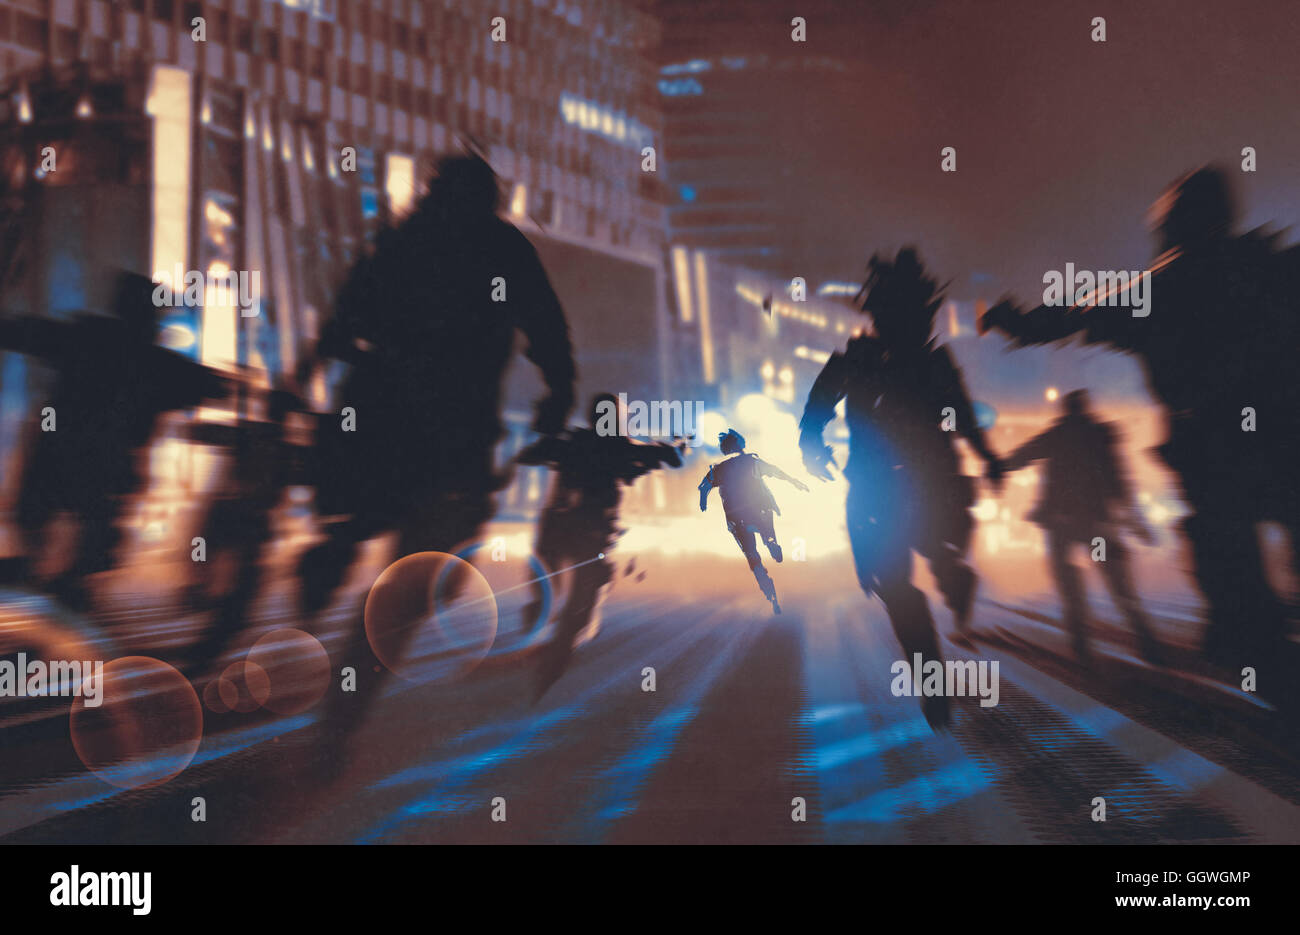 man running away from zombies in night city,illustration,digital painting - Stock Image